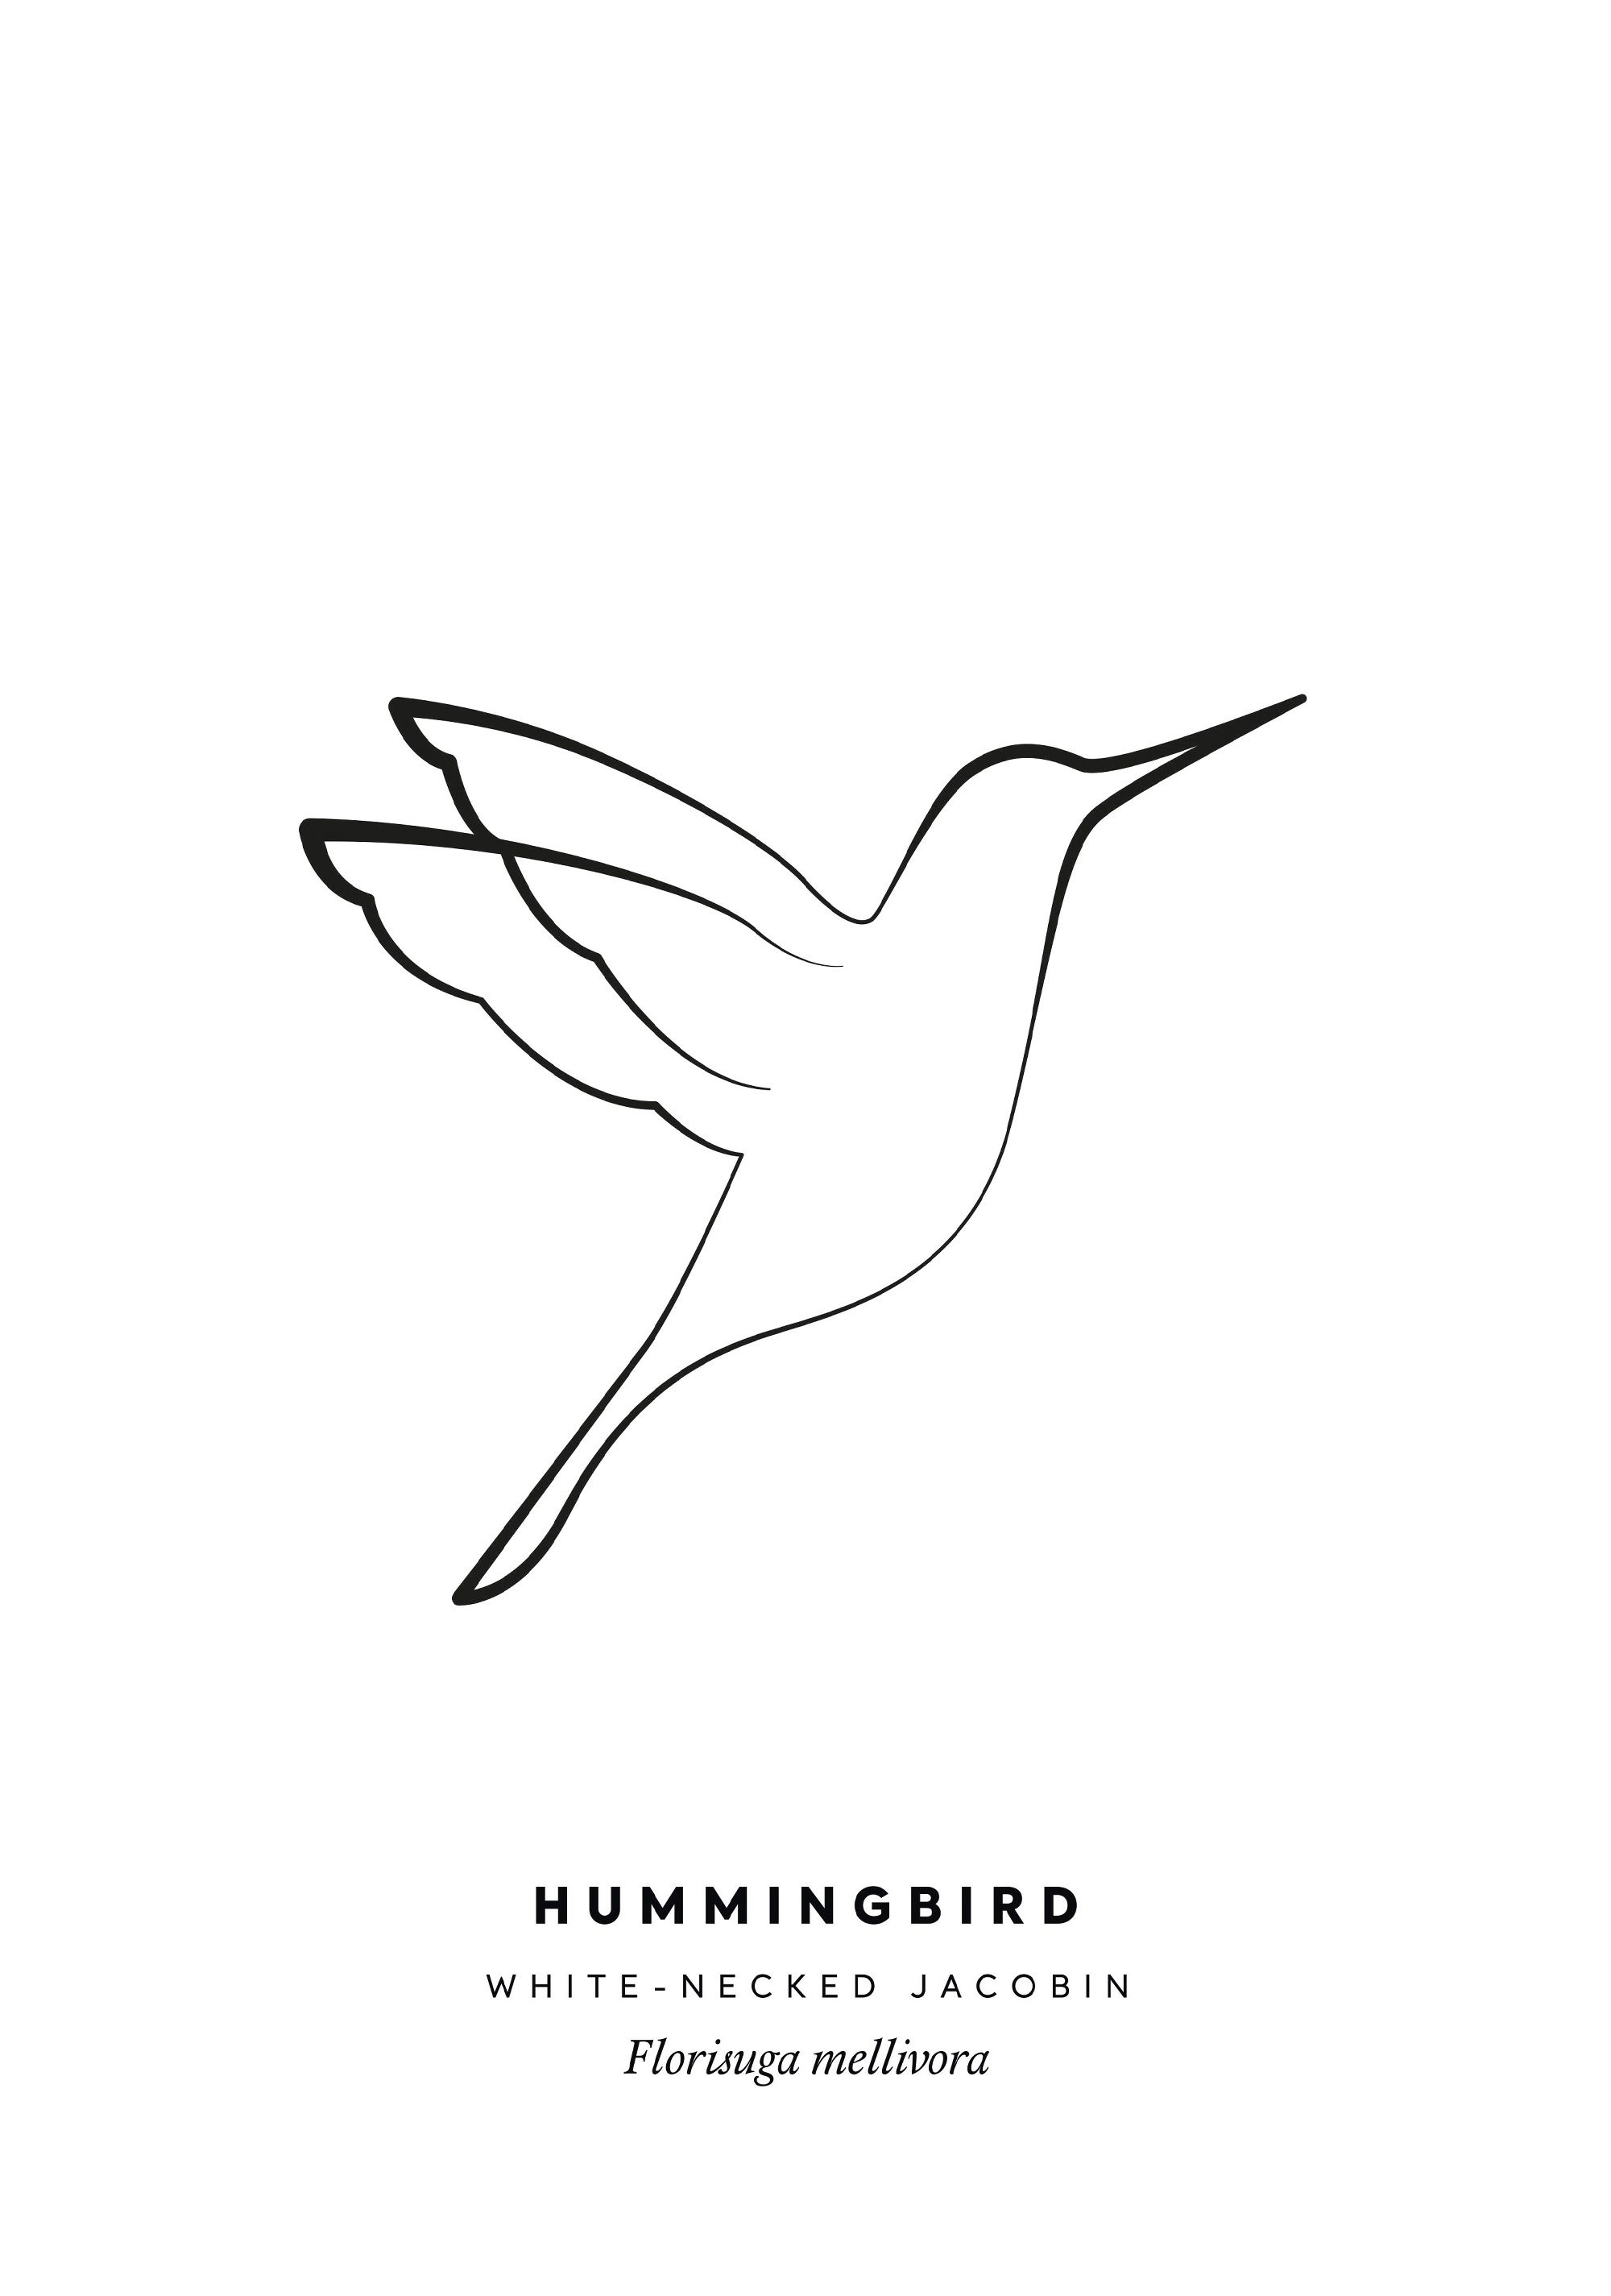 Hummingbird Tattoo Simple : hummingbird, tattoo, simple, Hummingbird, Printable, Single, Drawing, Tattoo,, Tattoo, Black,, Drawings